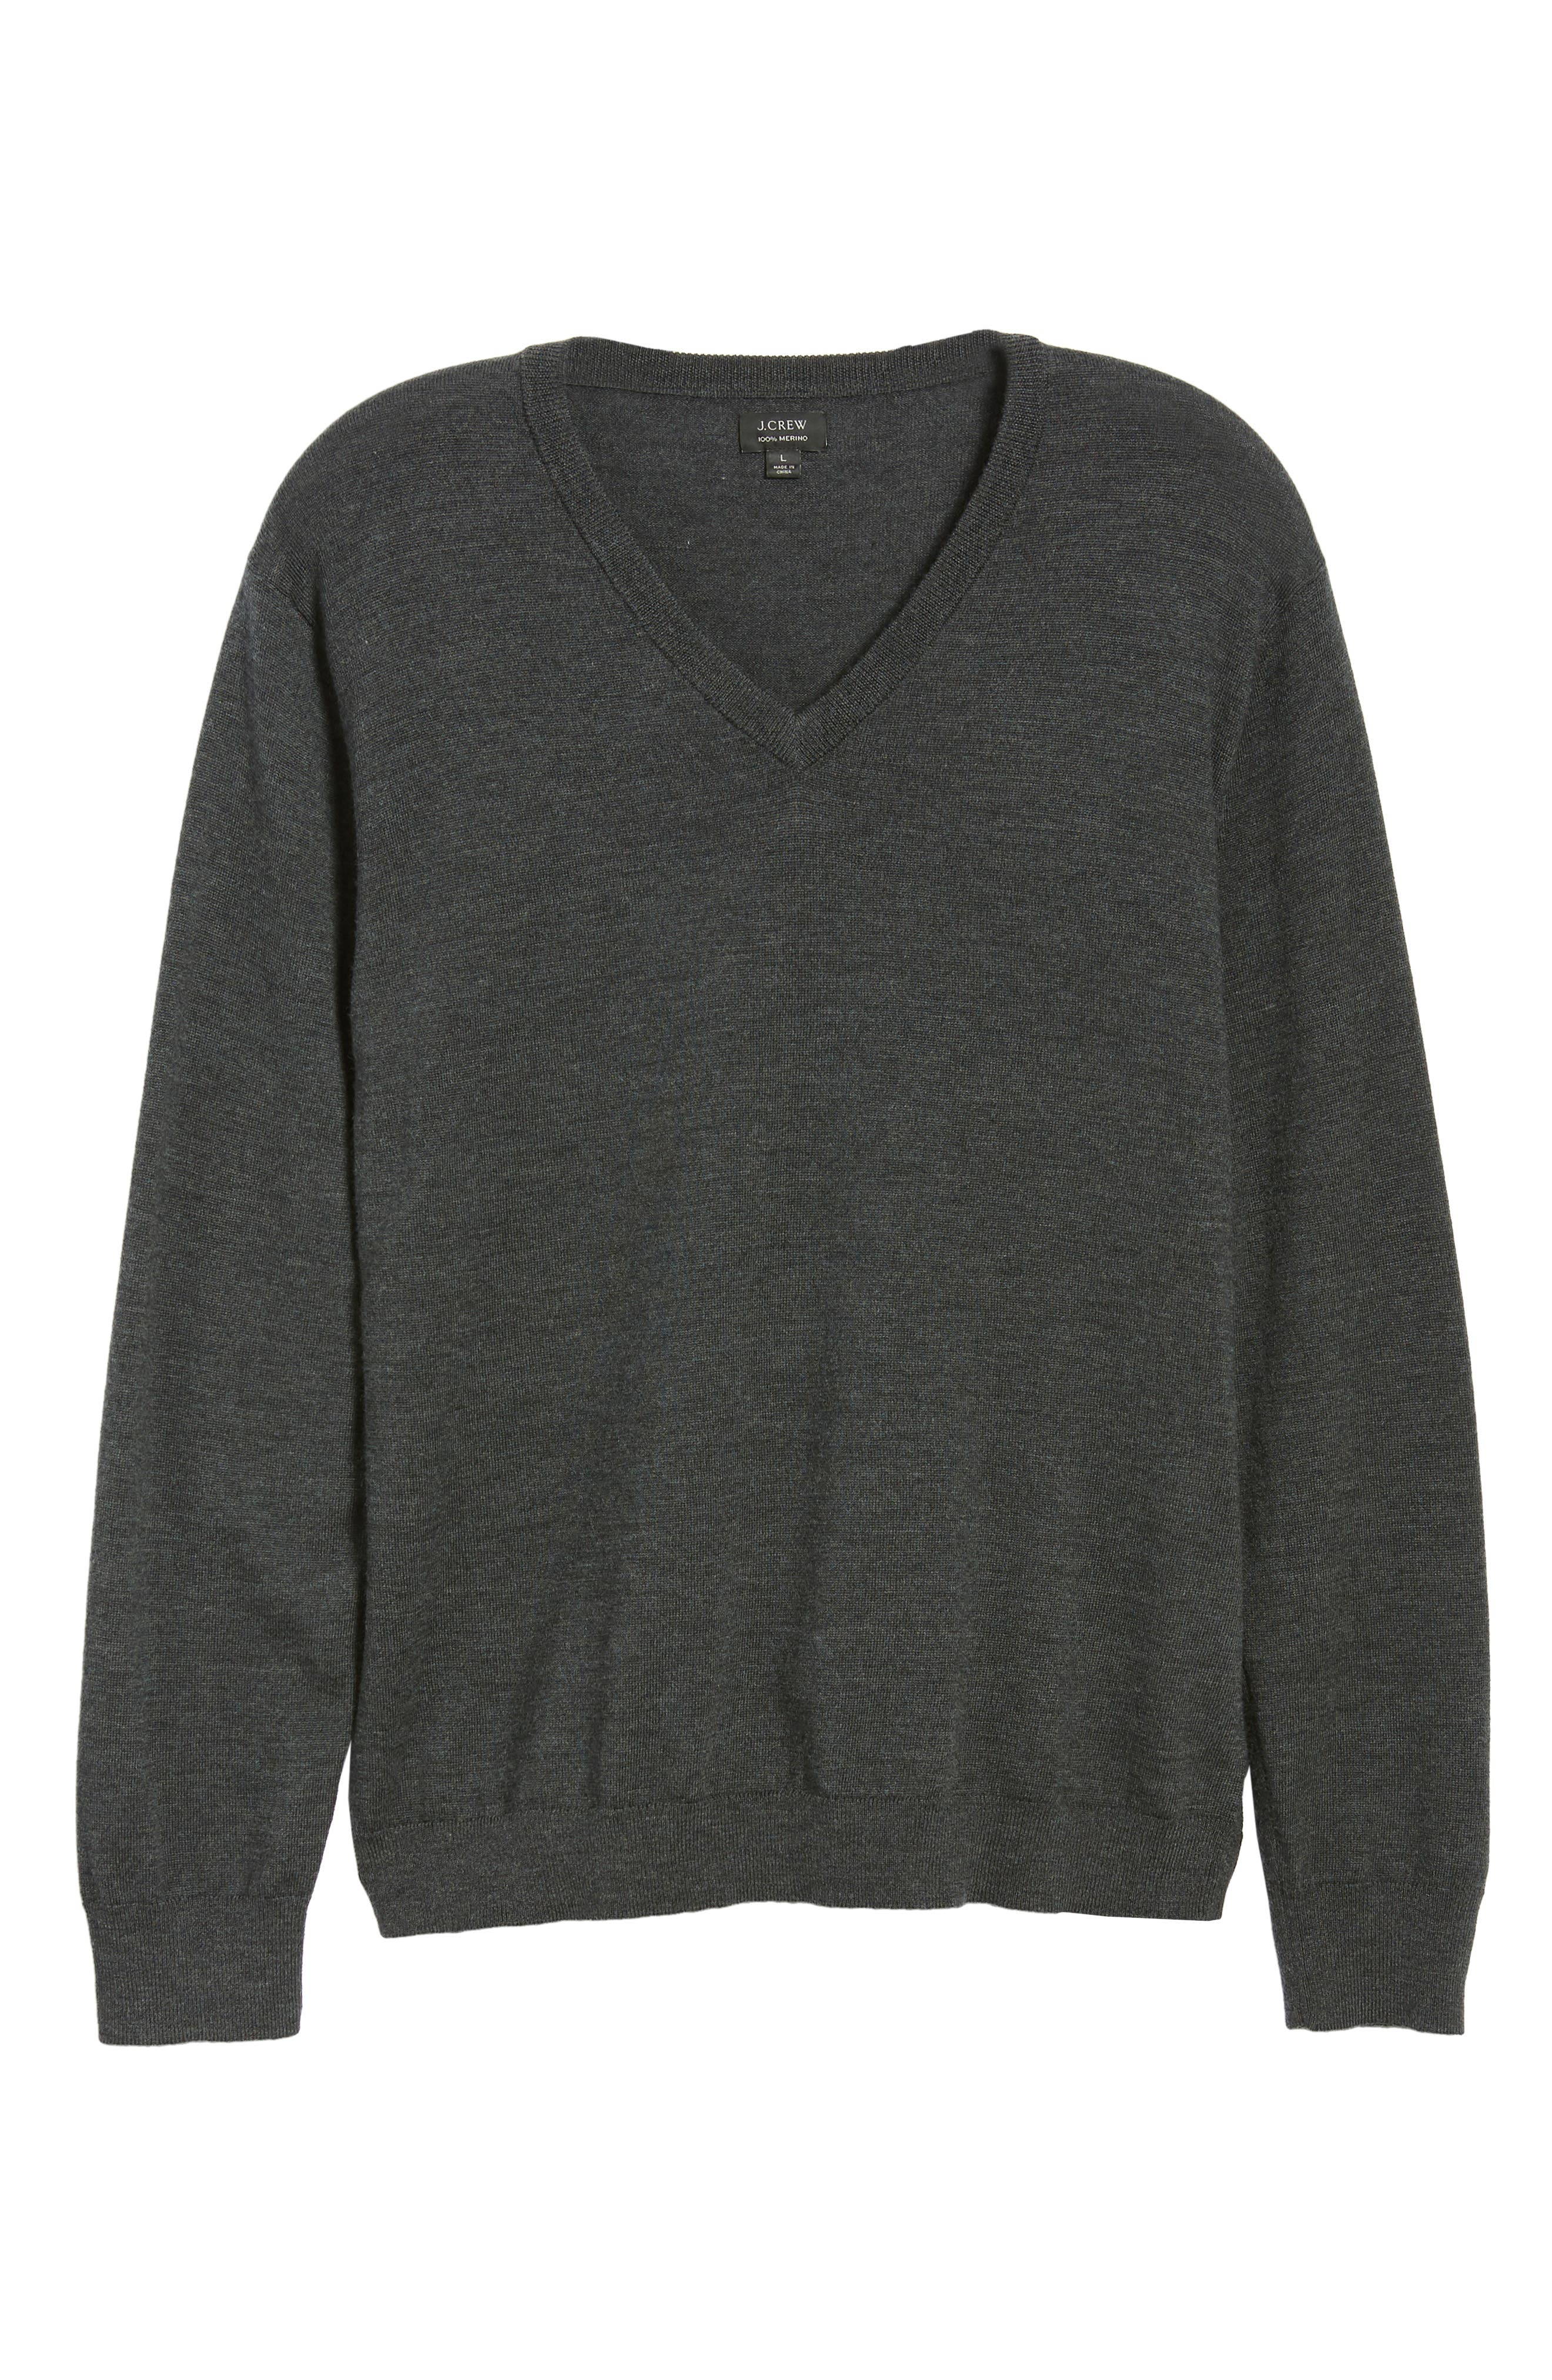 V-Neck Merino Wool Sweater,                             Alternate thumbnail 6, color,                             HEATHER CHARCOAL